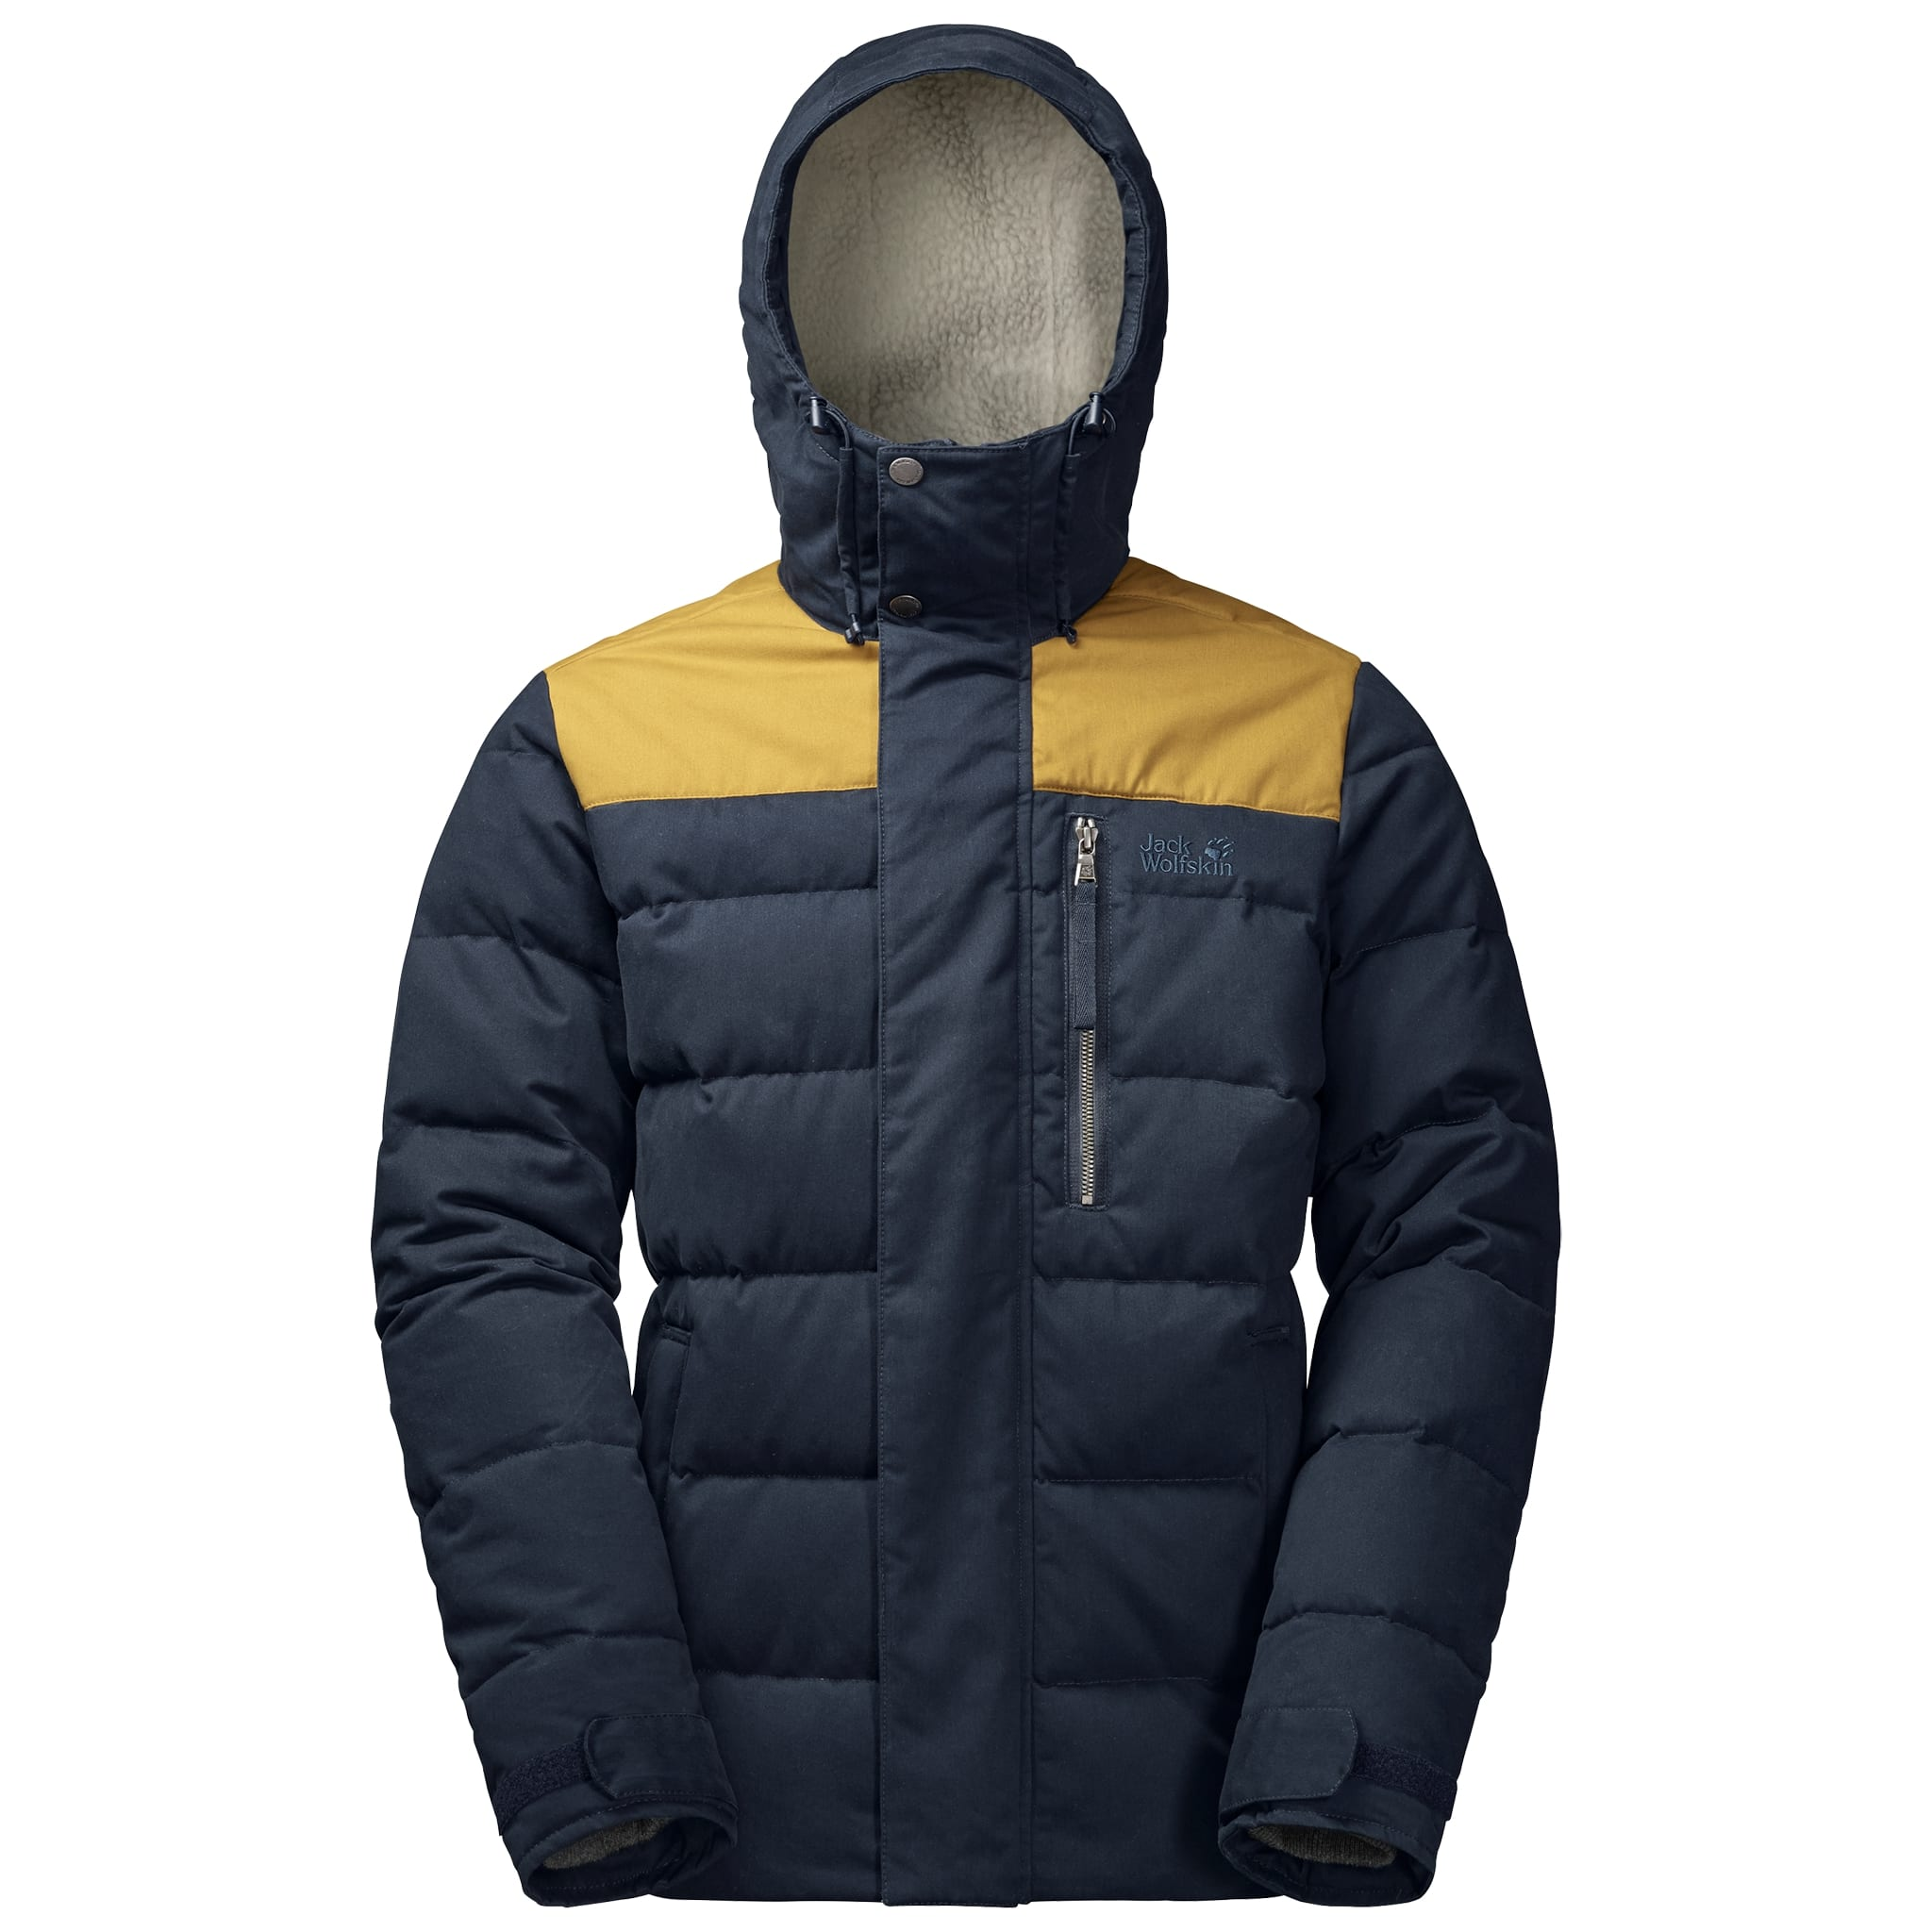 19ae0645f42 Jack Wolfskin Lakota Jacket - Mens, Up to 41% Off with Free S&H — CampSaver